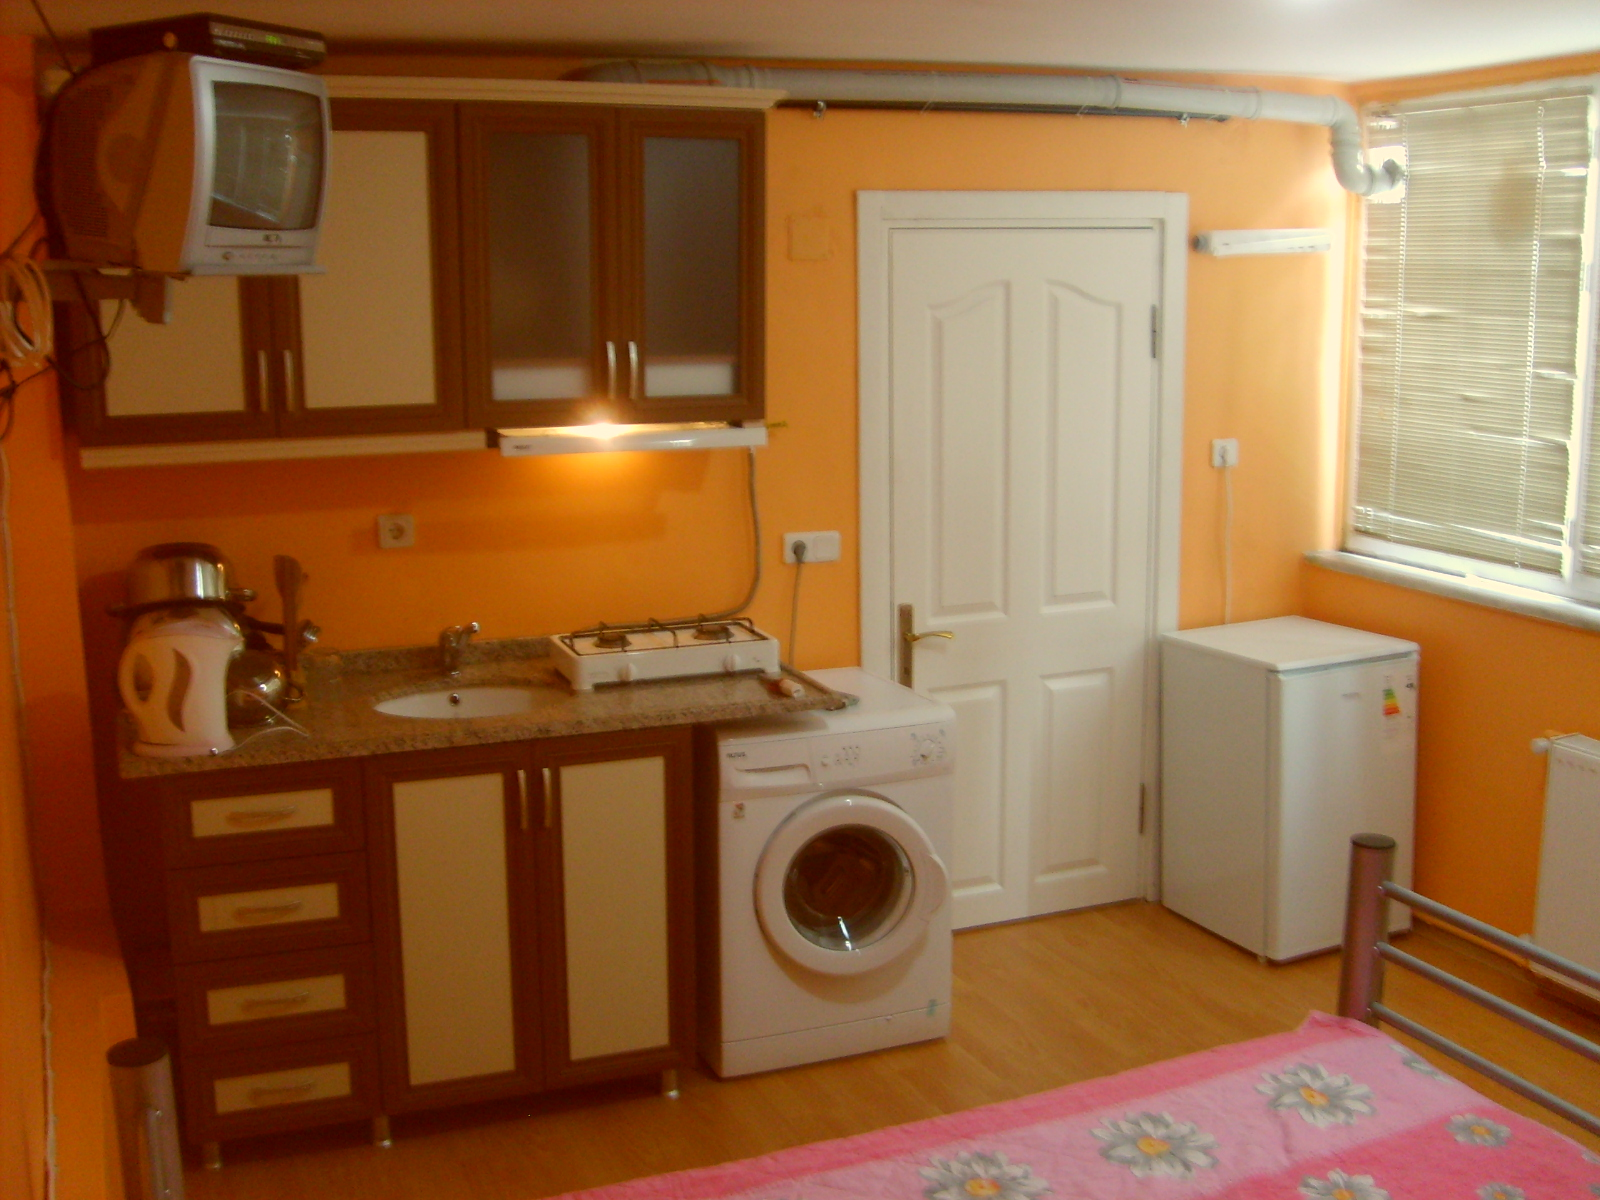 Istanbul apartment rentals erasmus apartments erasmus for Apartment furniture